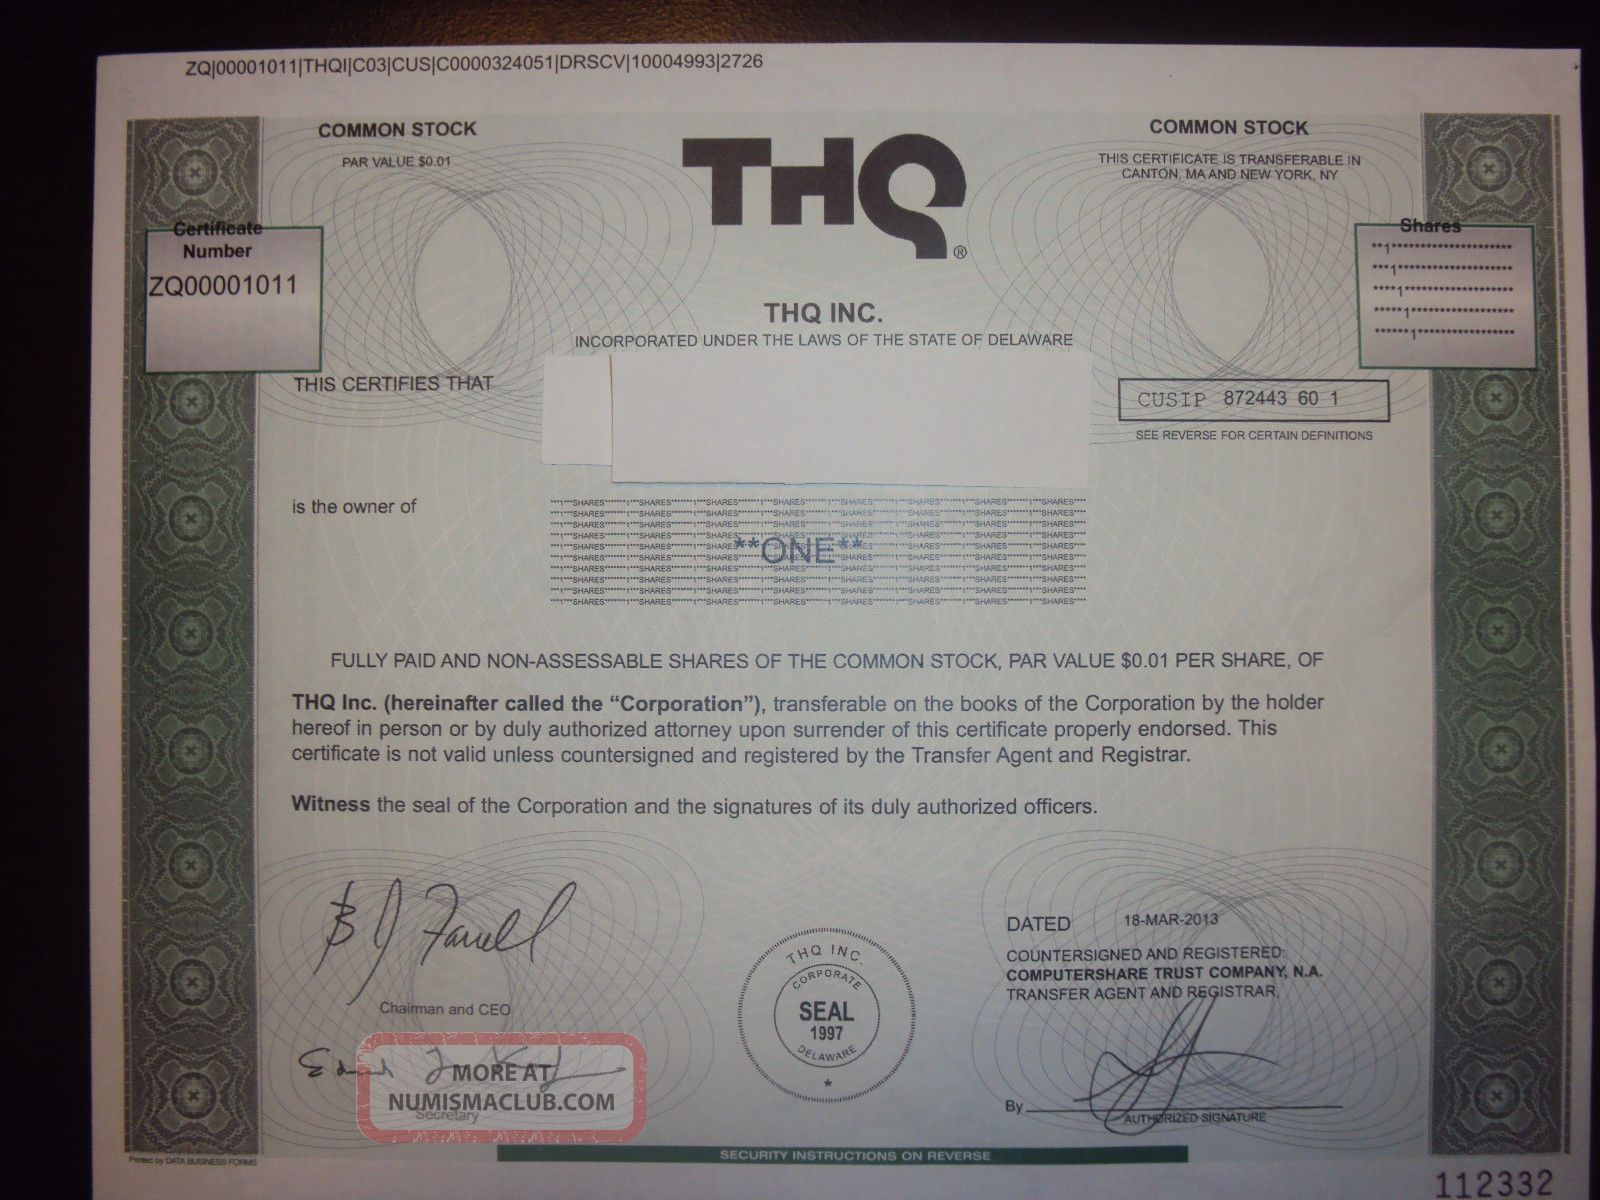 Thq Stock Certificate Stocks & Bonds, Scripophily photo